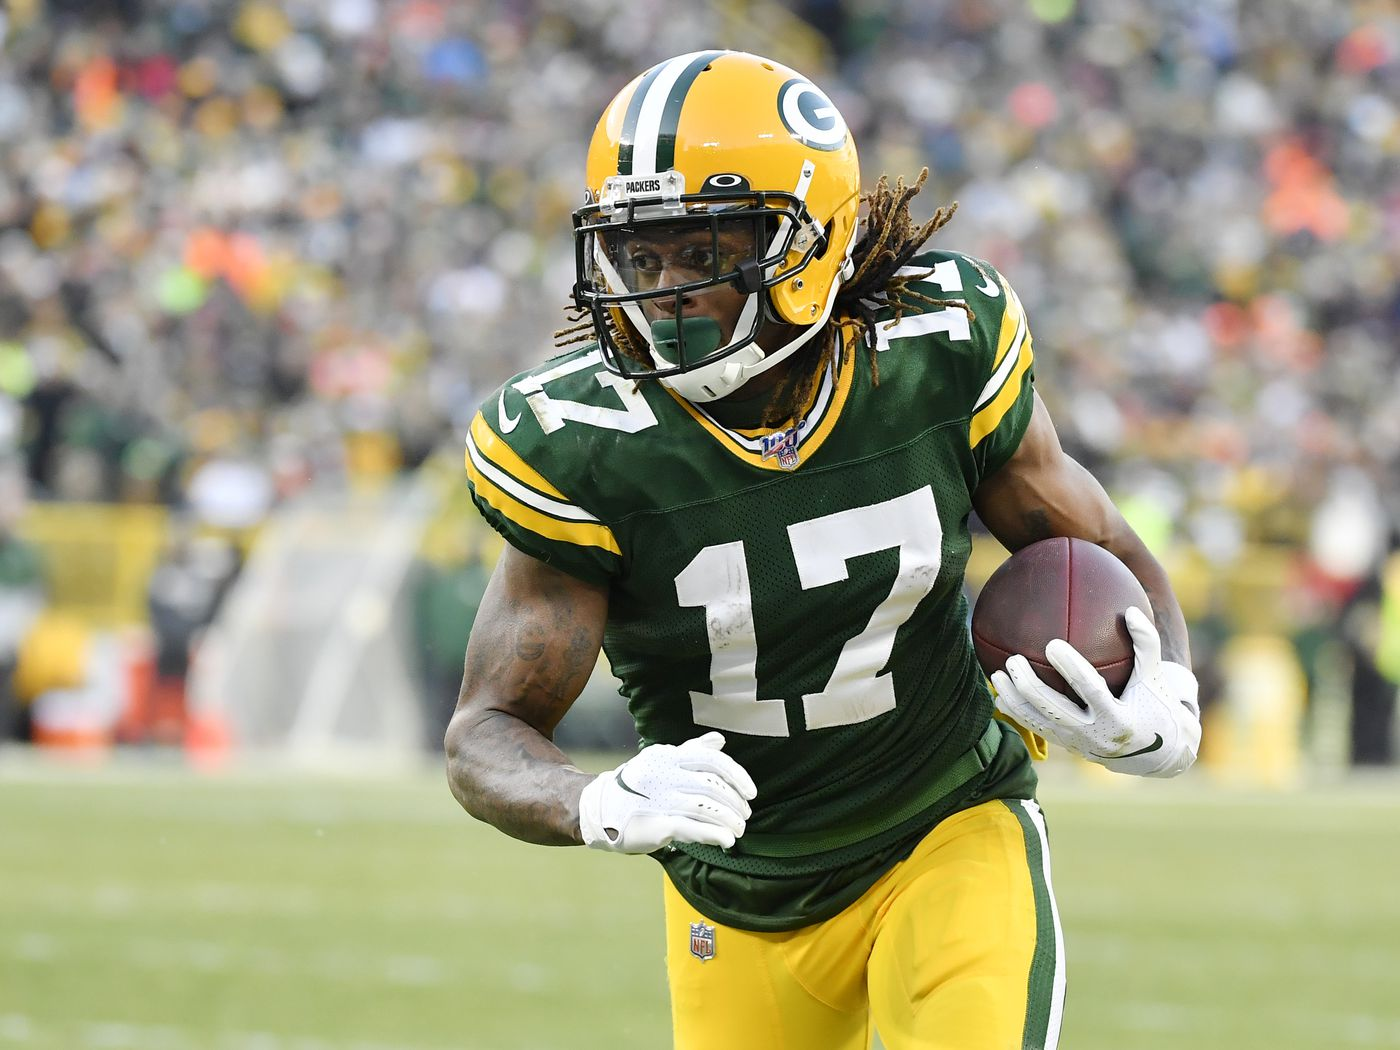 2020 Fantasy Football Rankings Early Wide Receivers For Ppr Leagues Fake Teams